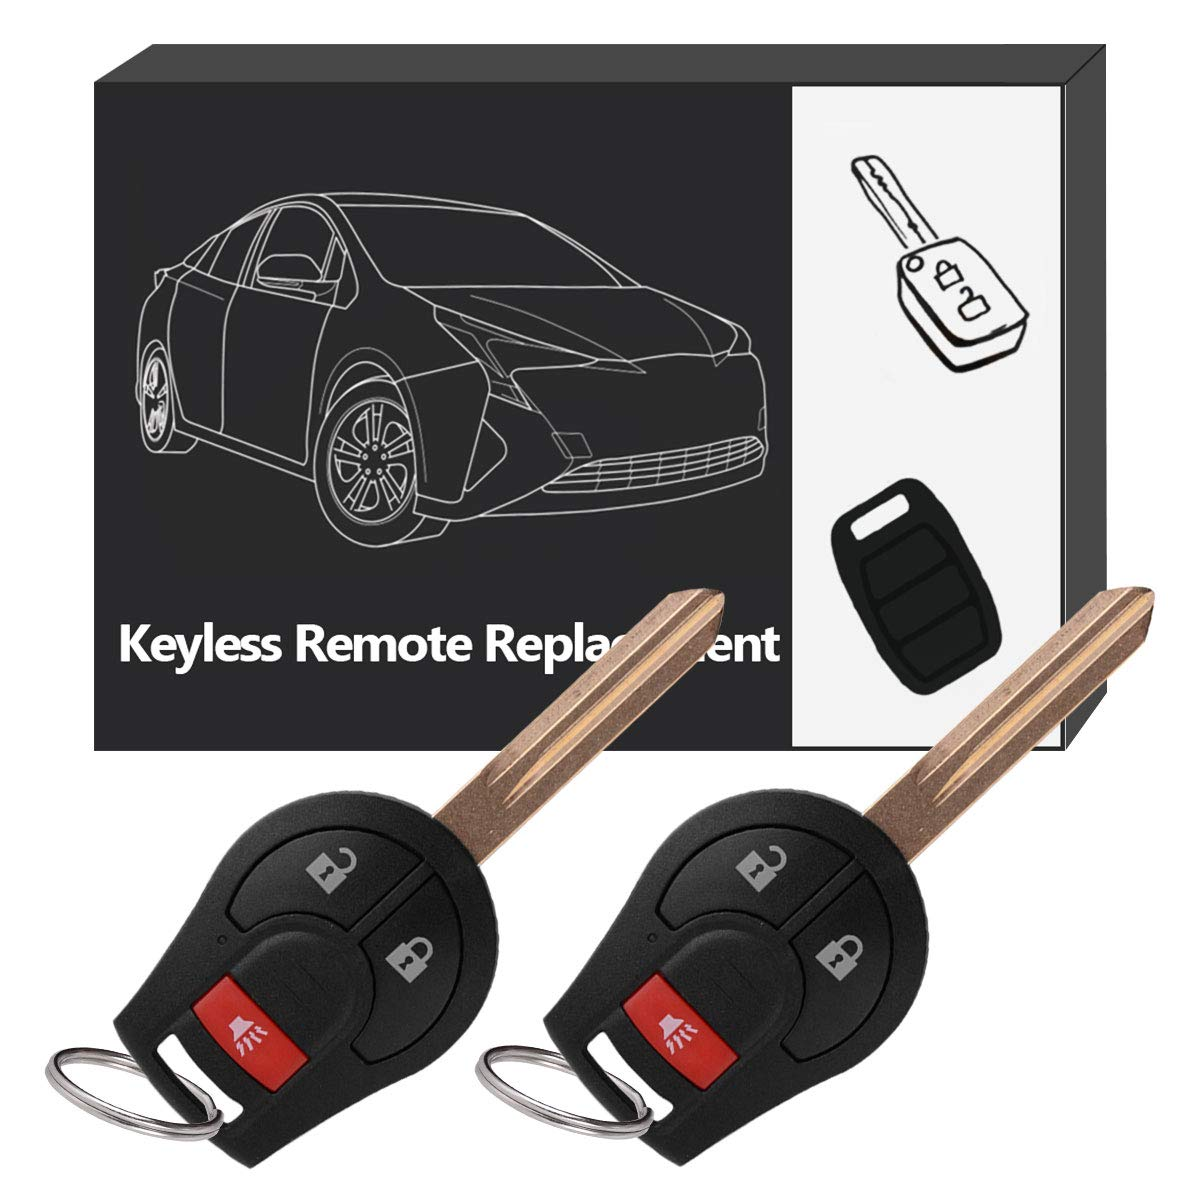 YITAMOTOR Key Fob Compatible for 2008-2016 Nissan Rogue / 2007 2008 2009 2010 2011 2012 Nissan Sentra Uncut Ignition Head Key Remote Replacement for CWTWB1U751